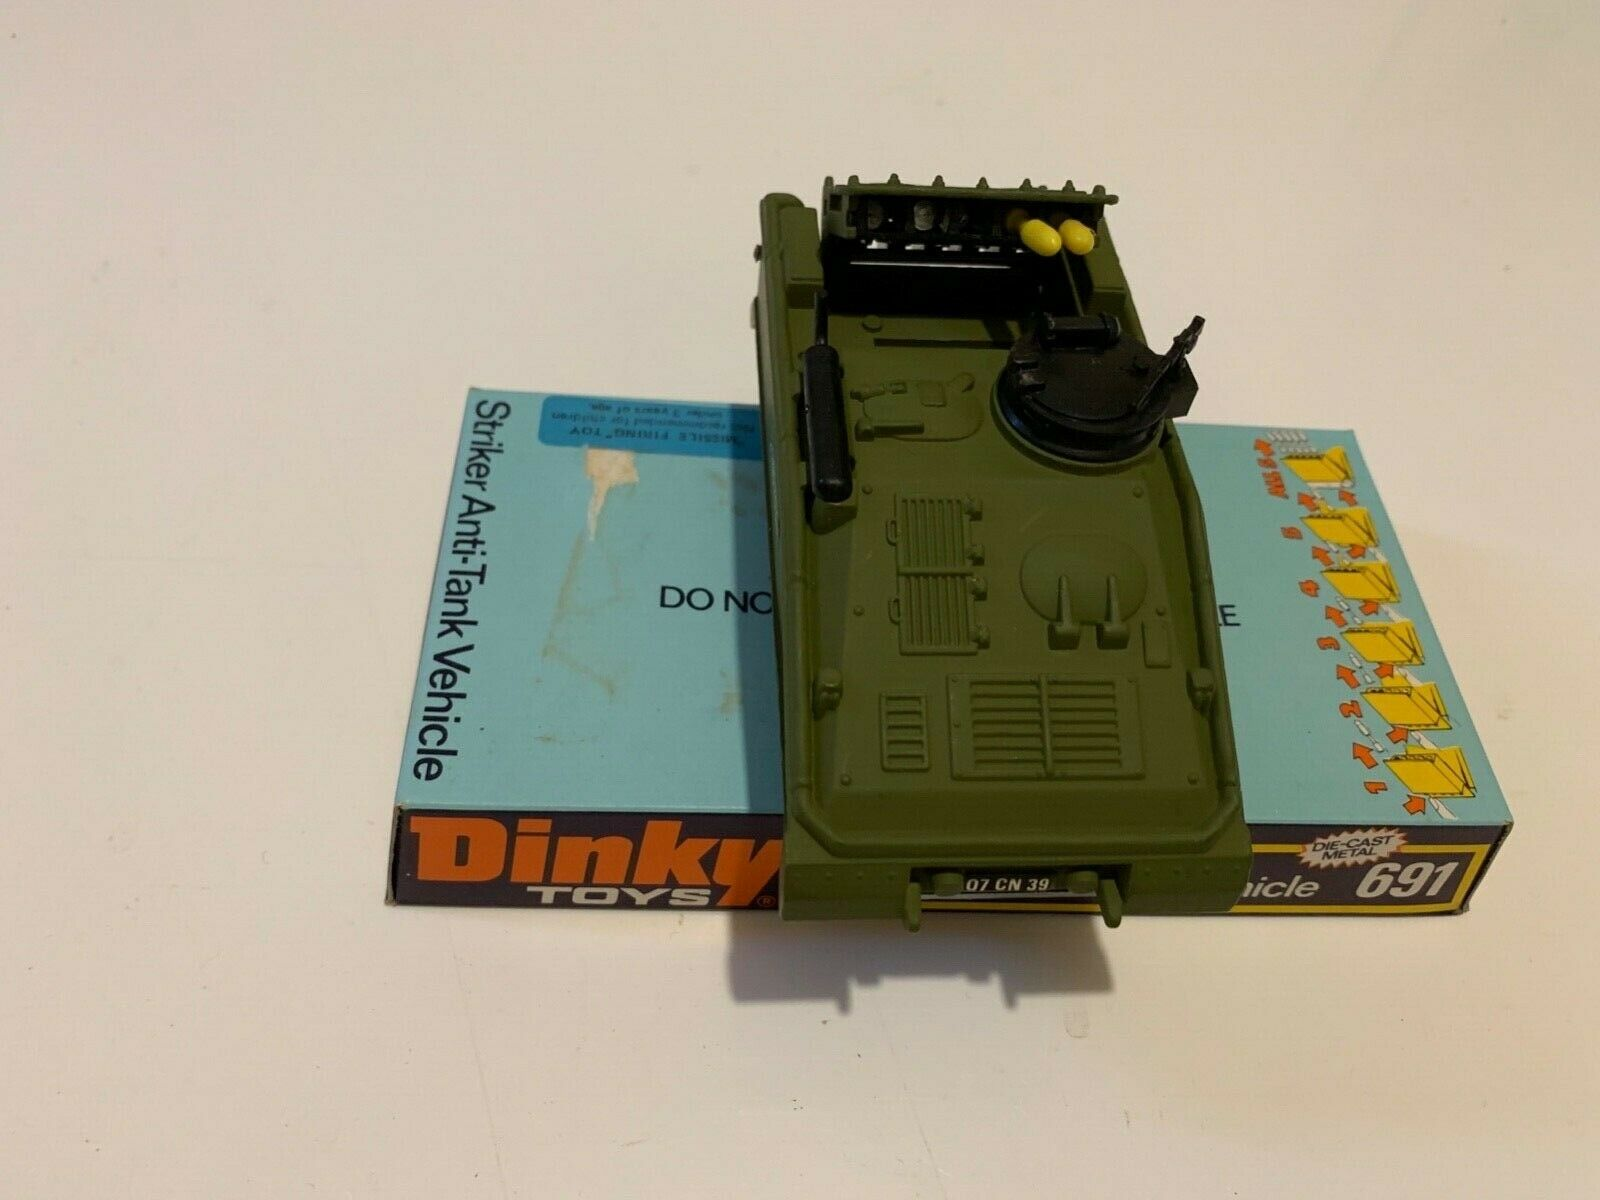 Dinky 691 Striker Anti Tank Vehicle Model in Mint Condition